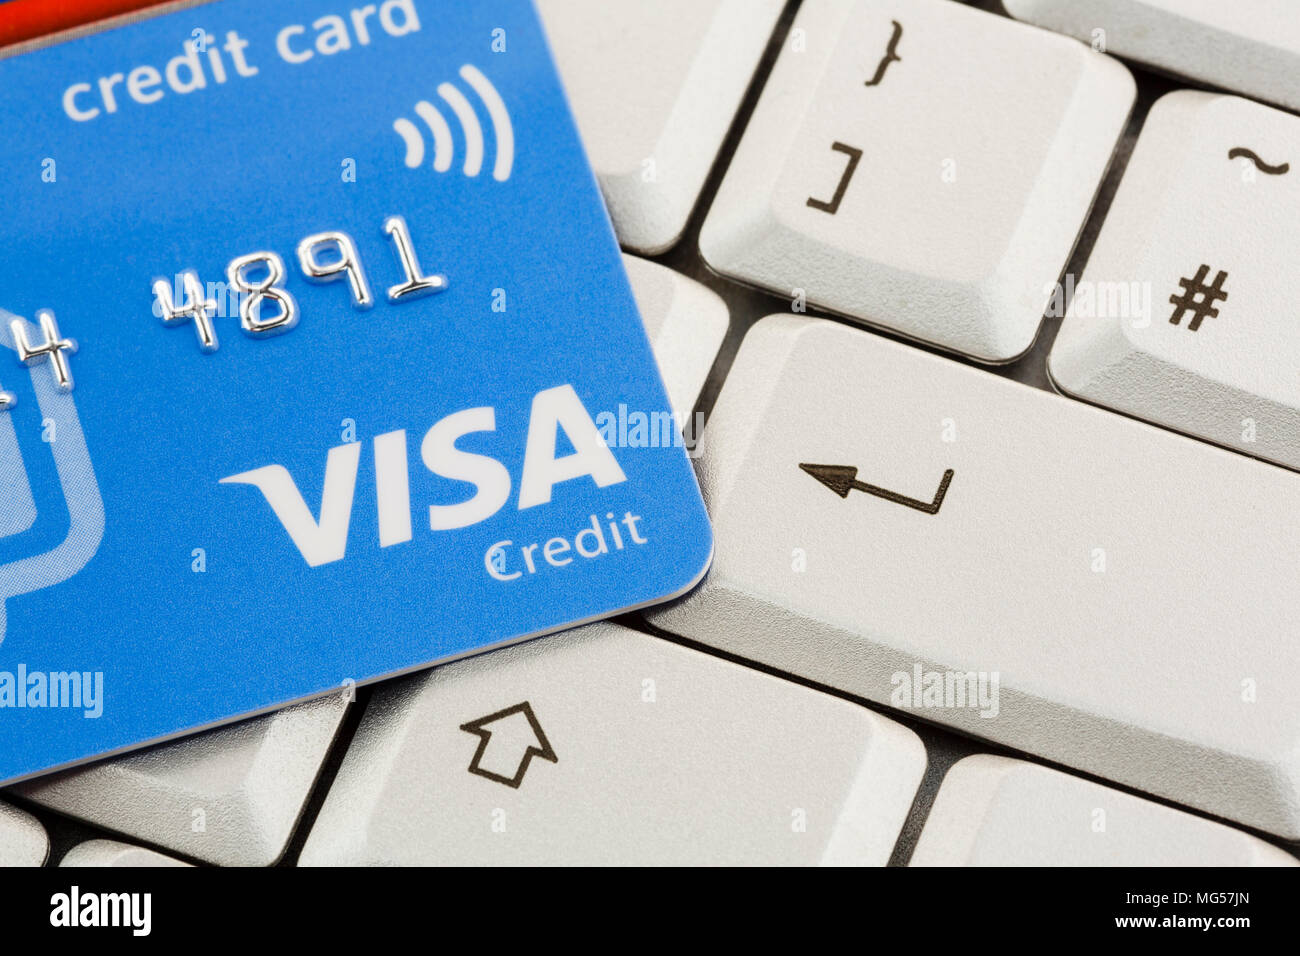 Visa card contactless credit card on a keyboard with enter key. To illustrate online internet shopping concept. England, UK, Britain - Stock Image